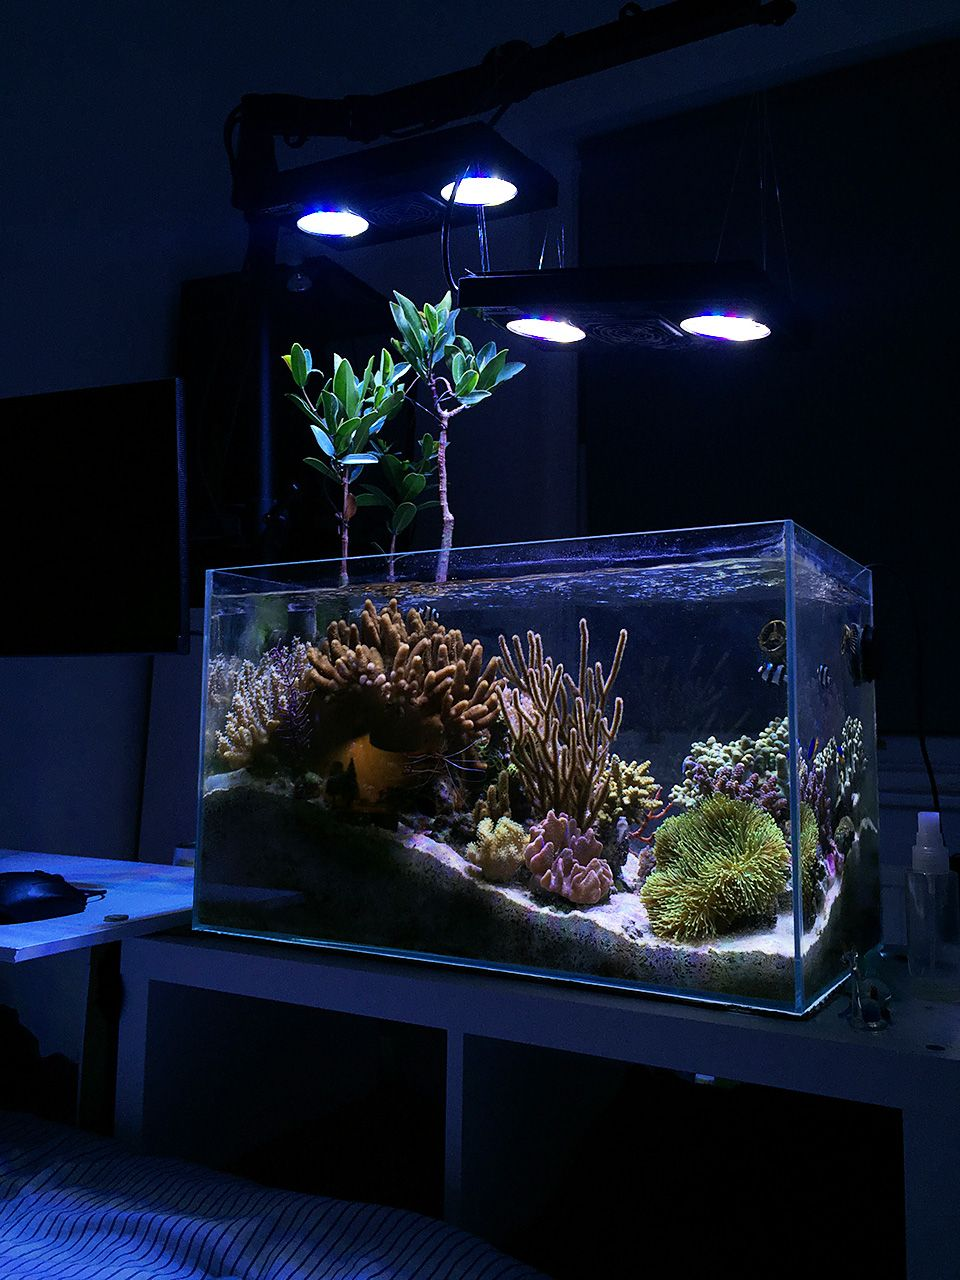 Freshwater aquarium fish uk - East1 Congratulations To Community Member East1 And His 17 Gallon Reef Aquarium For Being Selected For